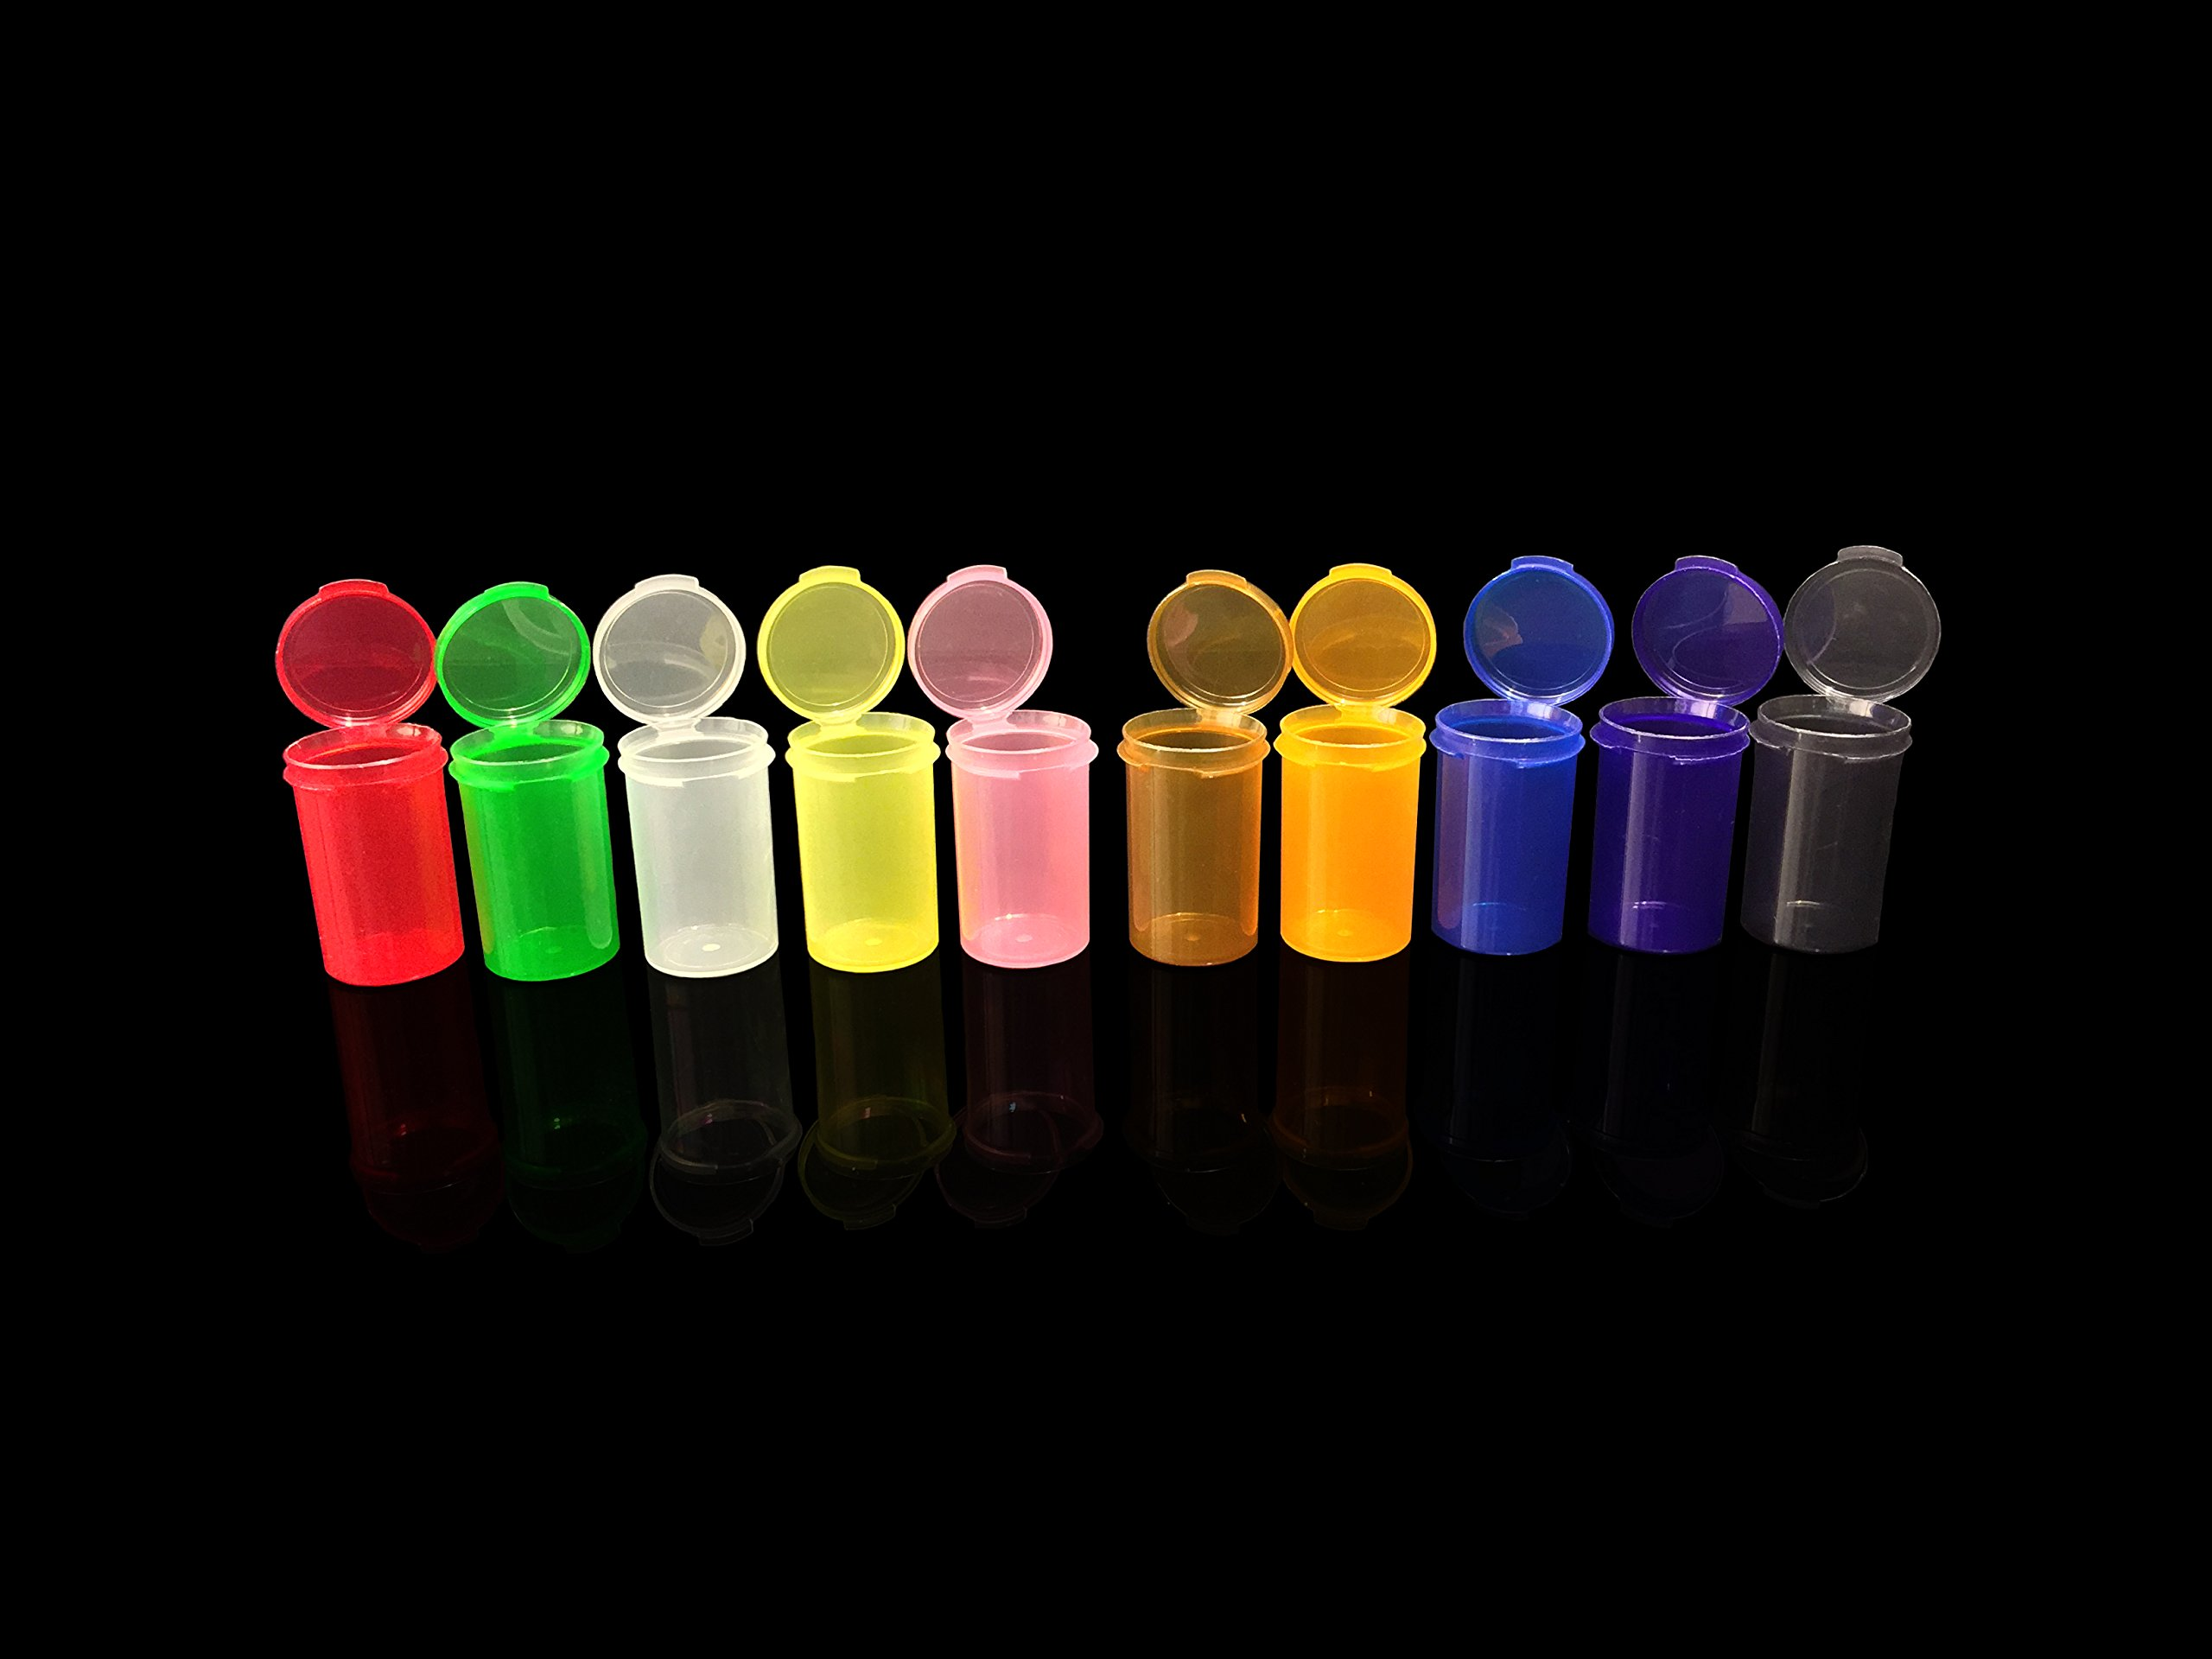 6 DRAM SMALL ROUND HINGED CONTAINER CRAFTS, RX PILL BOTTLES CONTAINERS MIX COLOR (600)